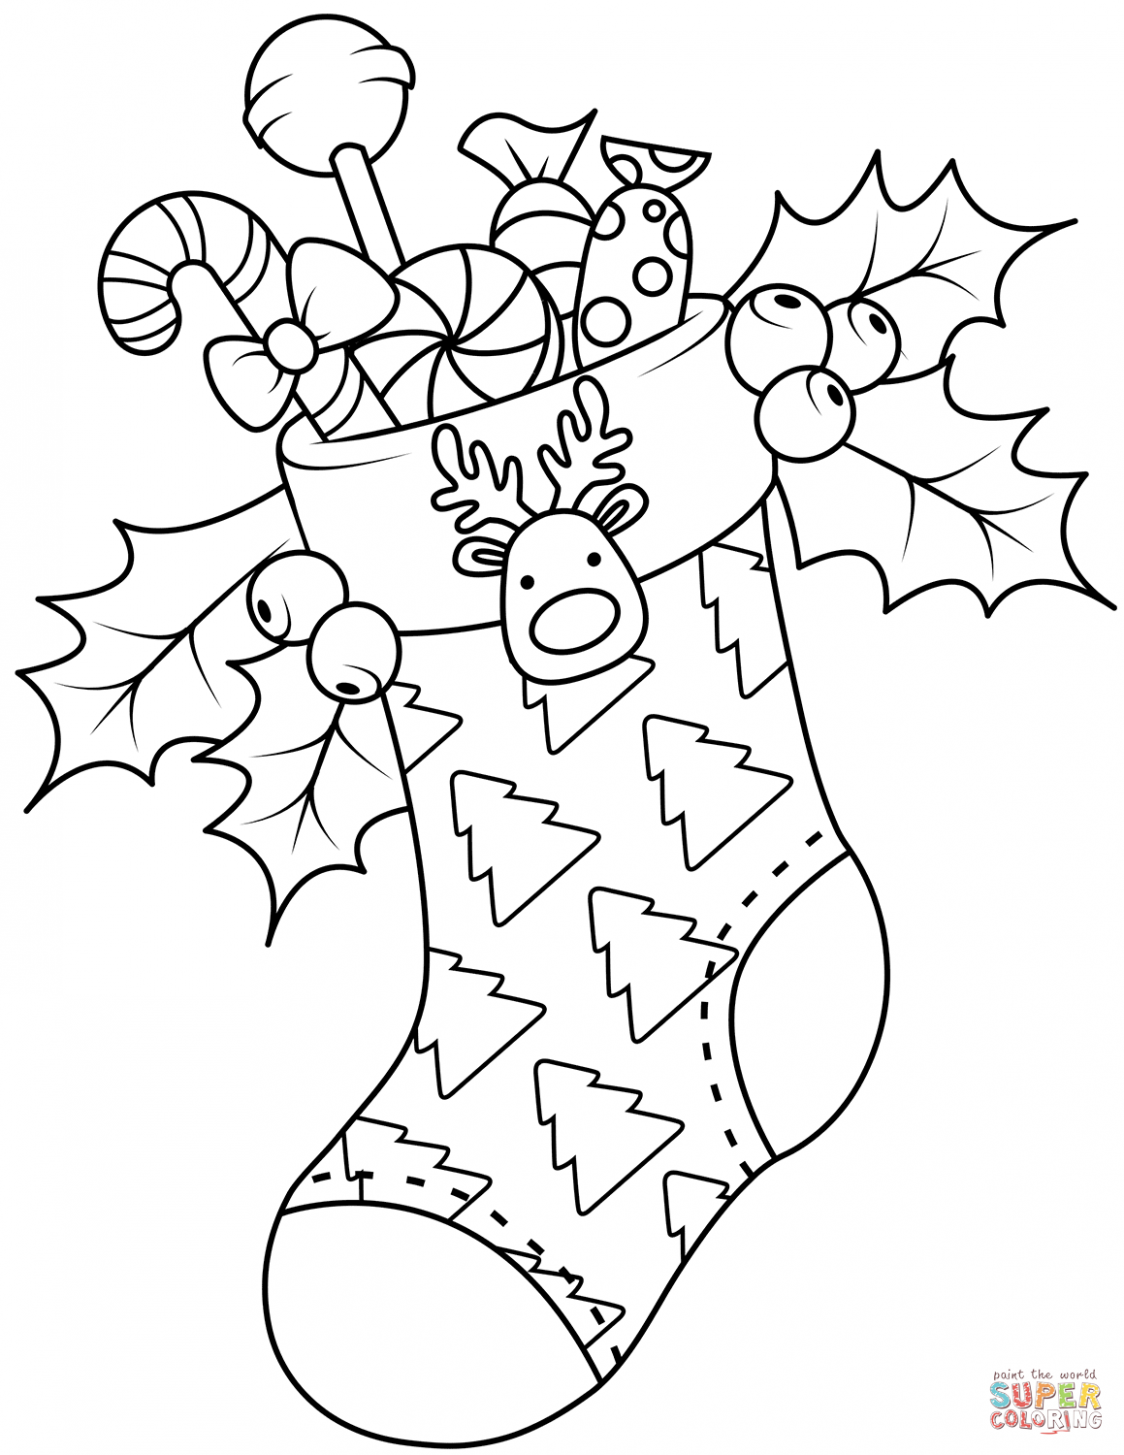 Christmas Stockings coloring pages | Free Coloring Pages – Christmas Coloring Pages Stocking